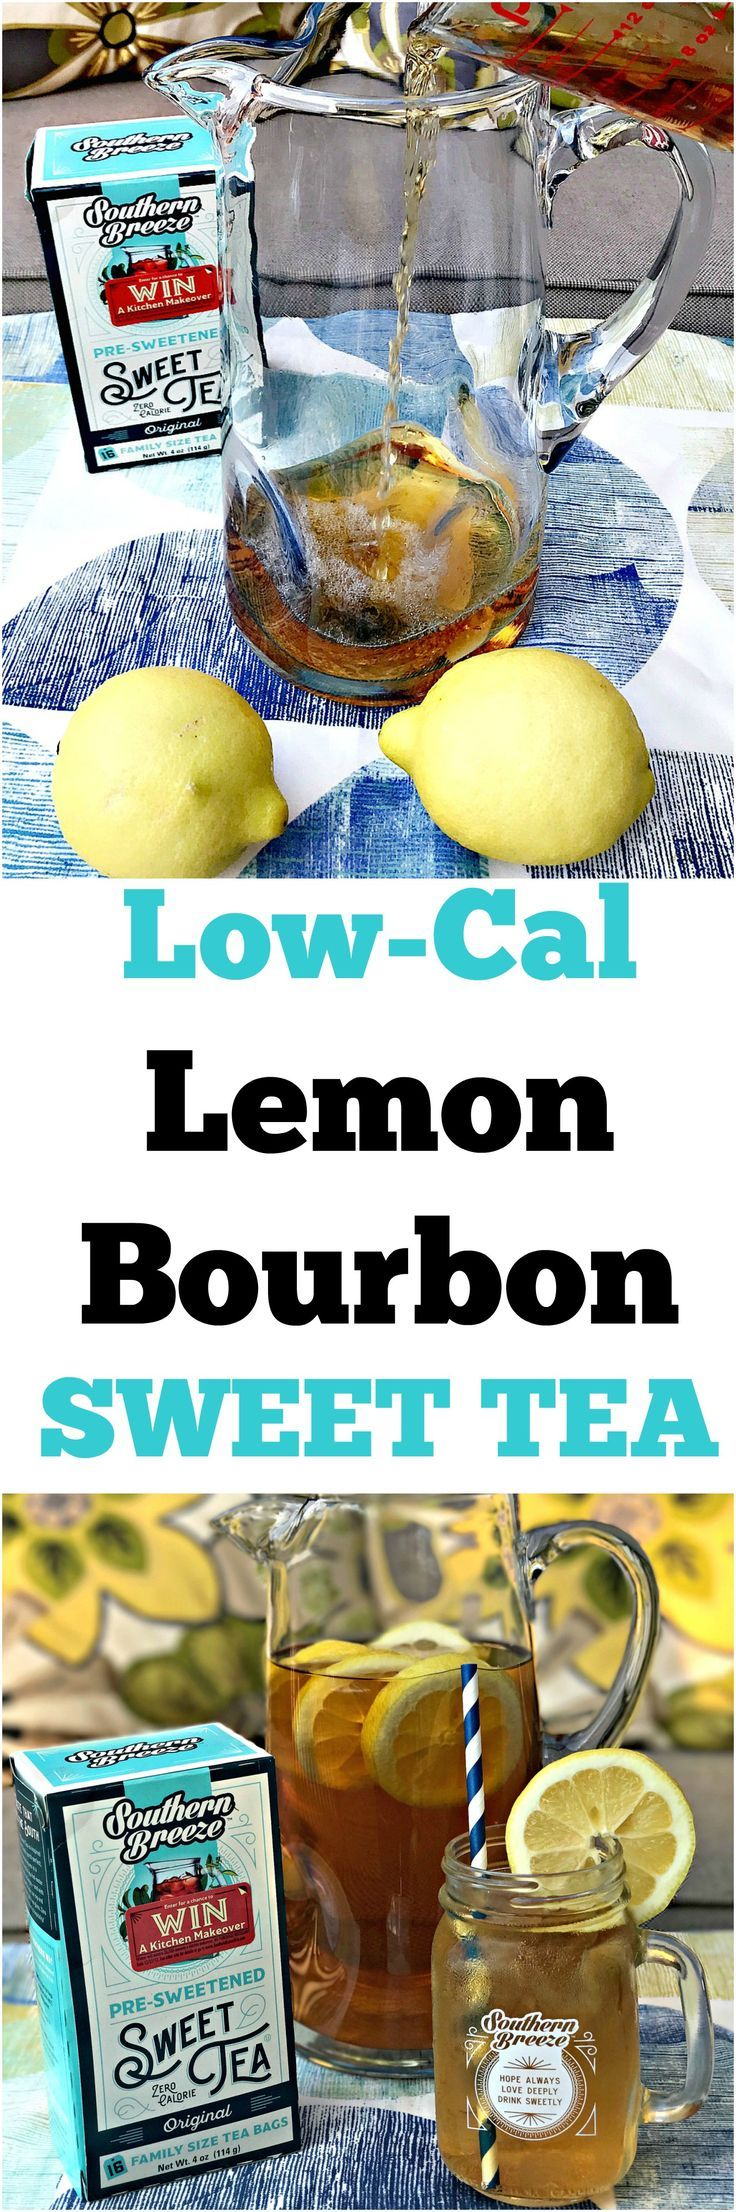 Sweet Tea @sbreezetea Lemon Bourbon Cocktail is low-calorie and guilt-free with fresh lemon and bourbon whiskey perfect for summer gatherings and events.